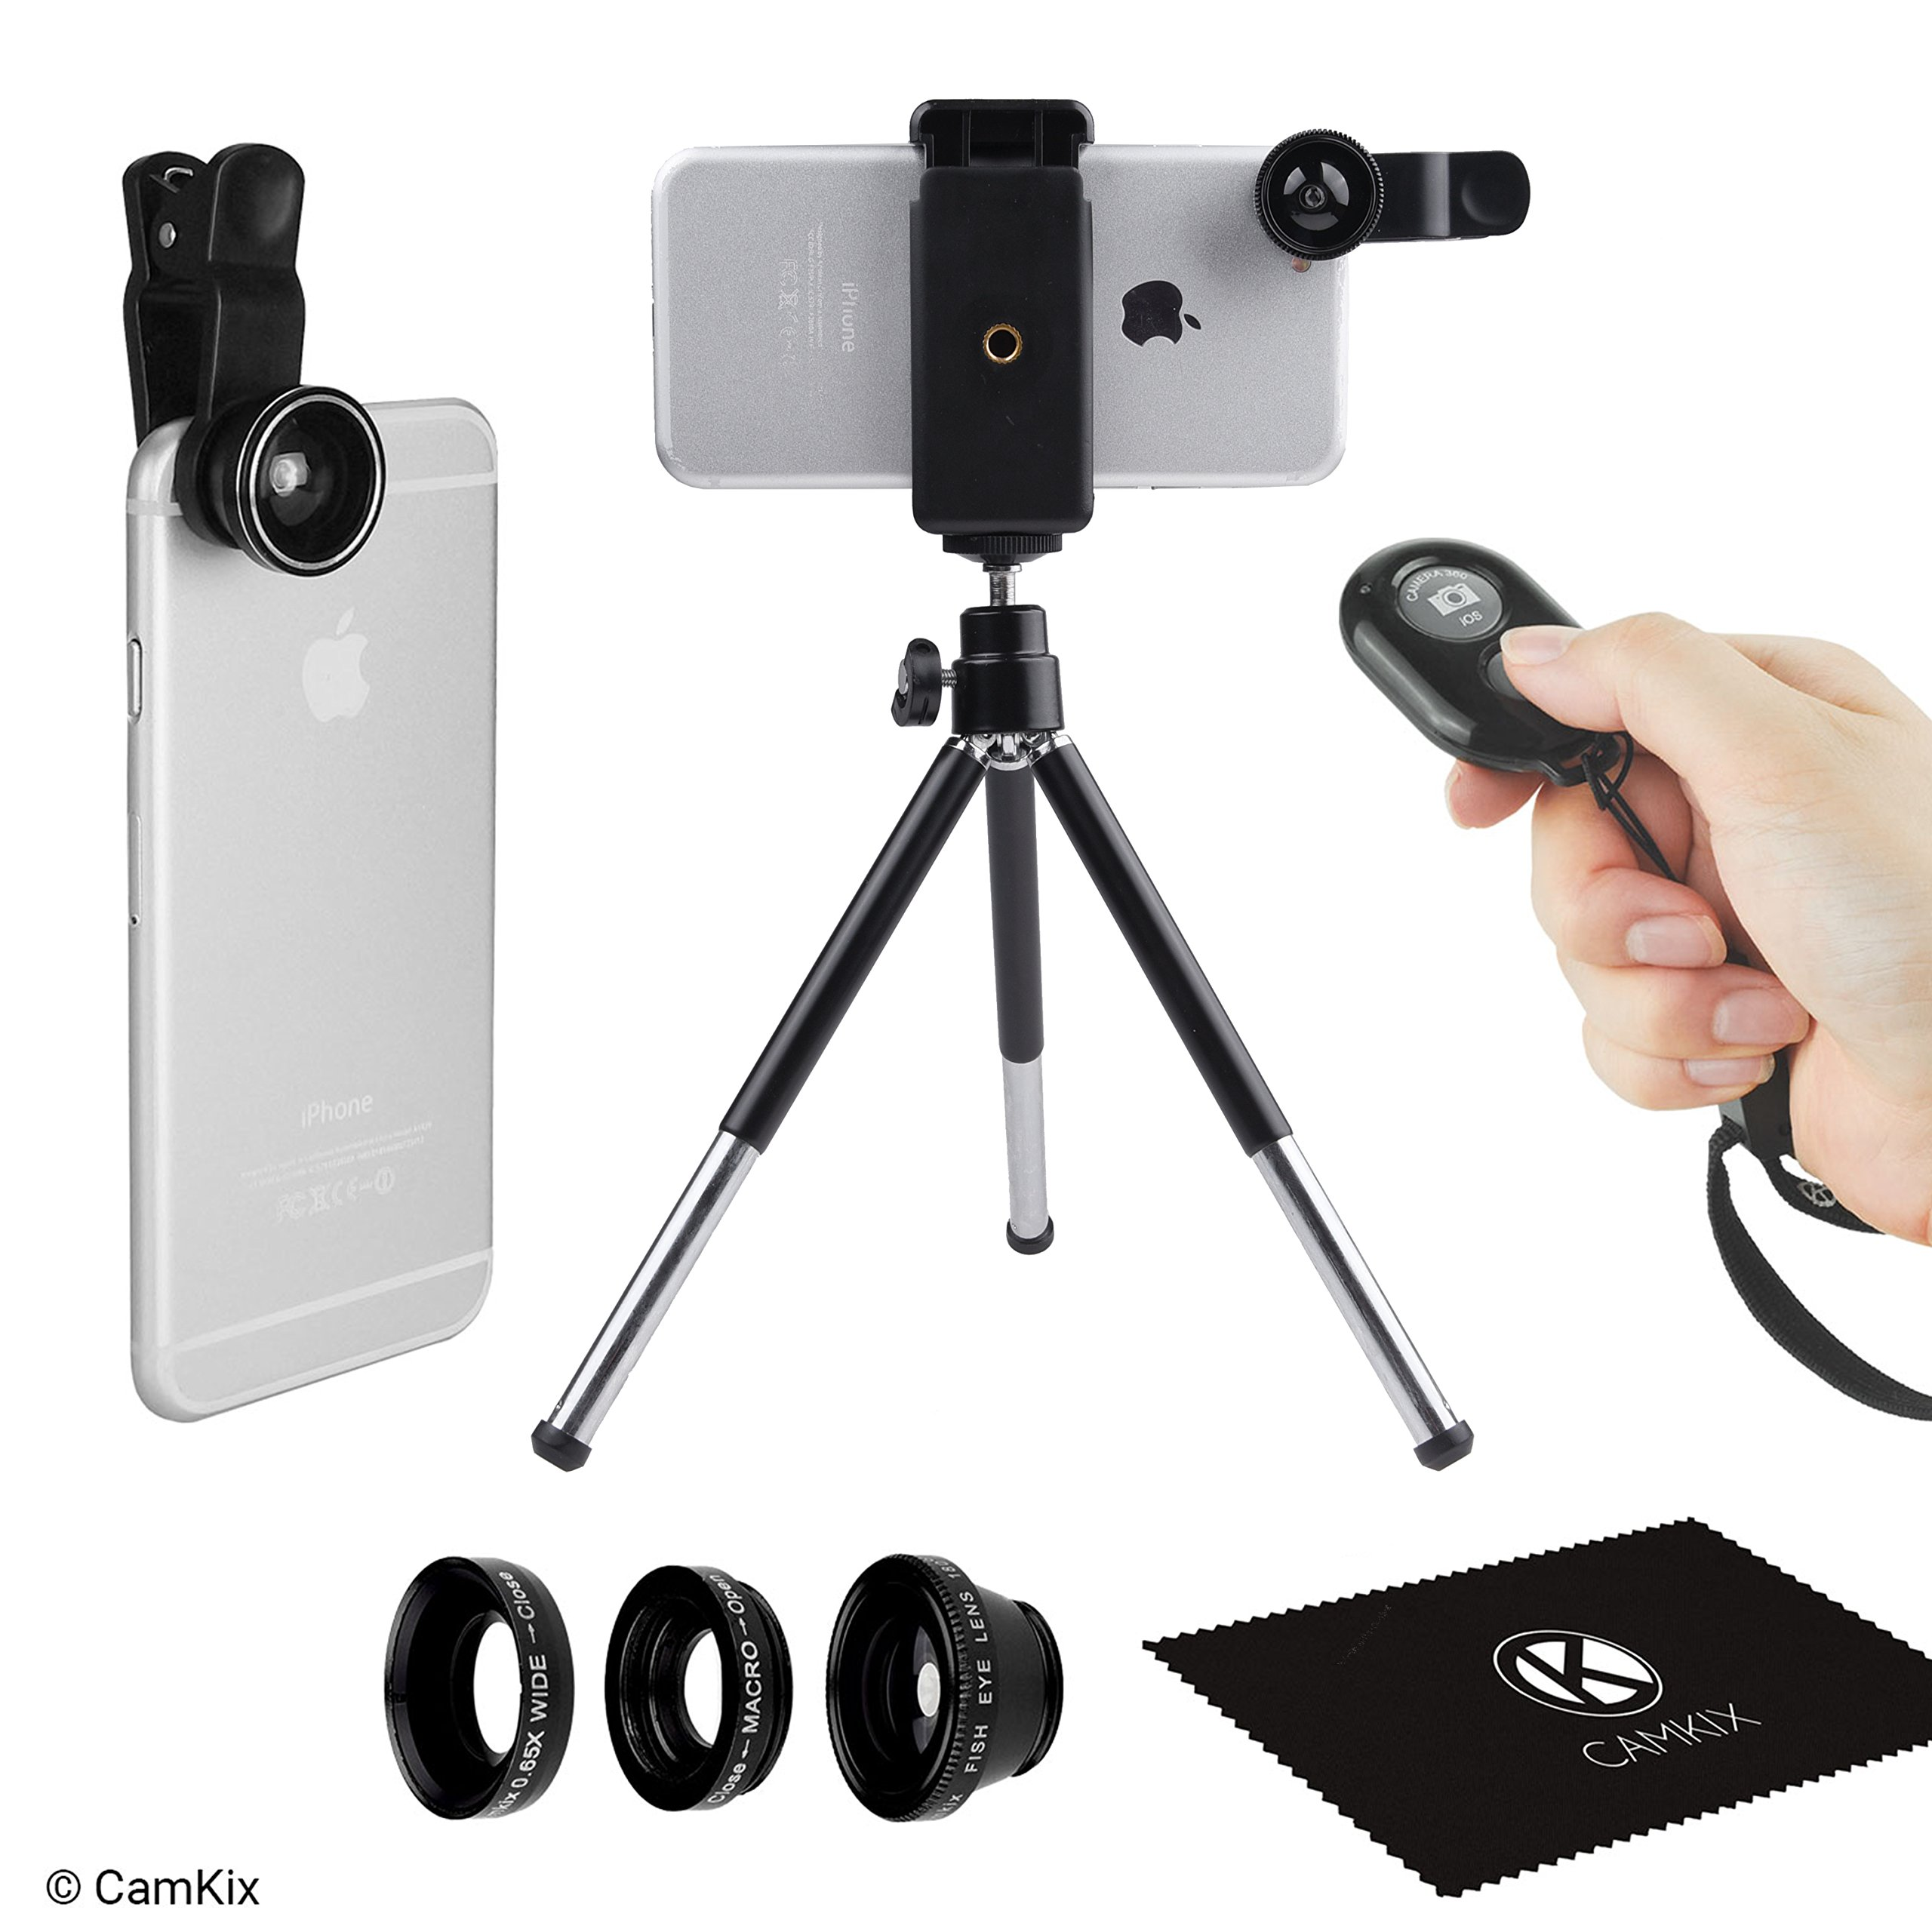 Universal 3in1 Camera Lens Shutter Remote + Tripod Kit for Smartphones, including Bluetooth Camera Remote, Fish Eye, 2in1 Macro and Wide Angle, Lens Clip, Tripod, Phone Holder, Bag and Cleaning Cloth by CamKix